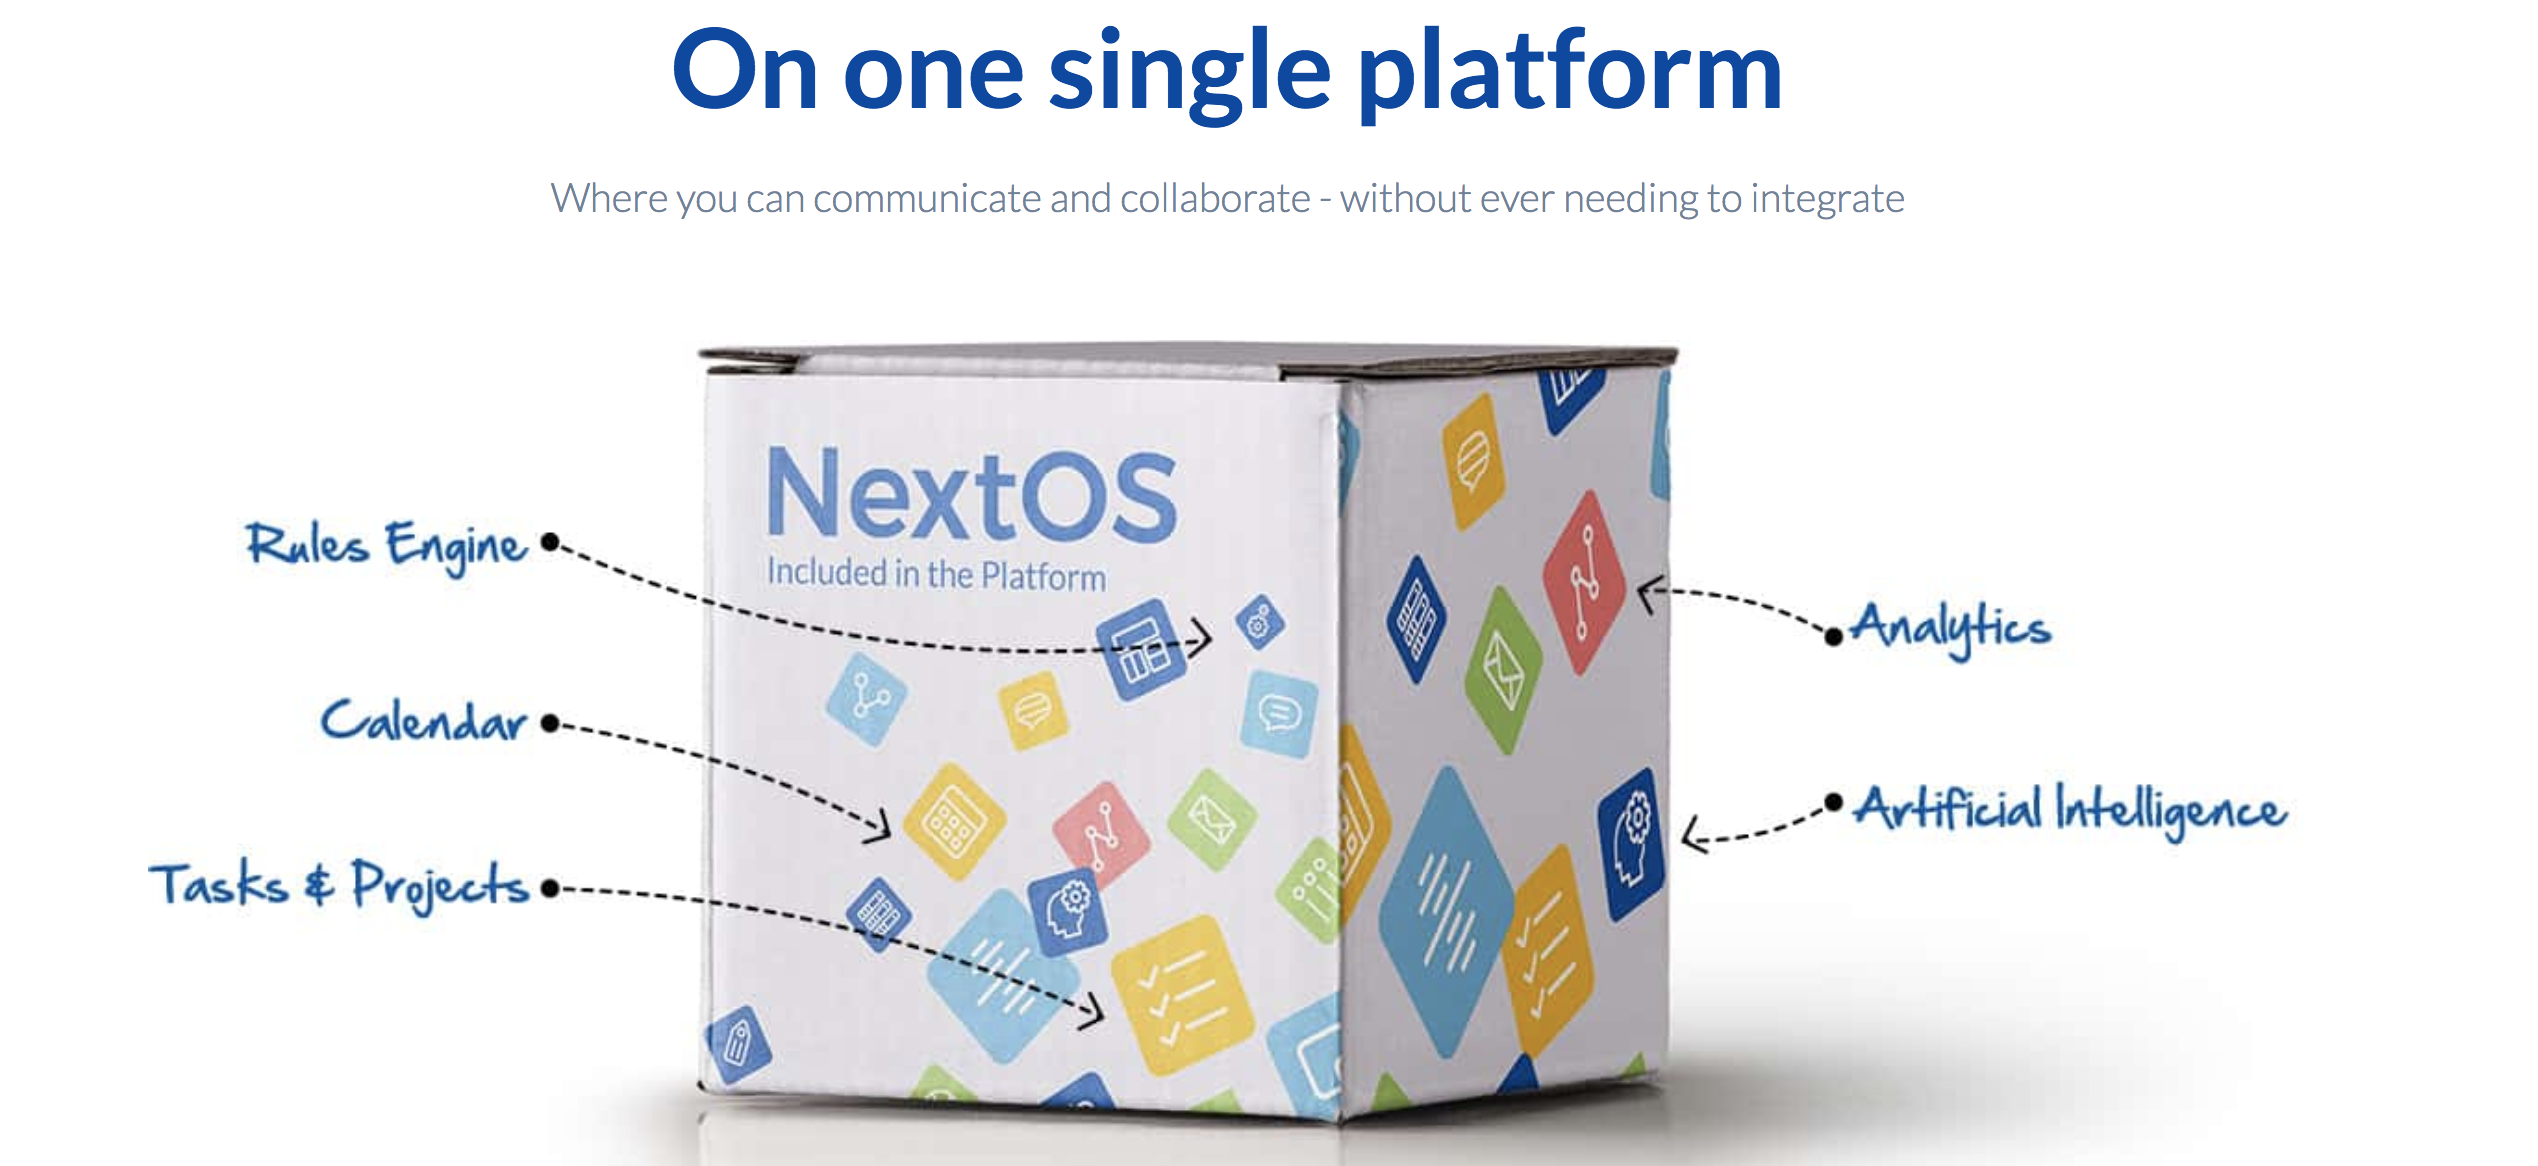 Nextiva Launches Nextos To Bring Together Business Communication, Team Collab & Customer Engagement (q&a)